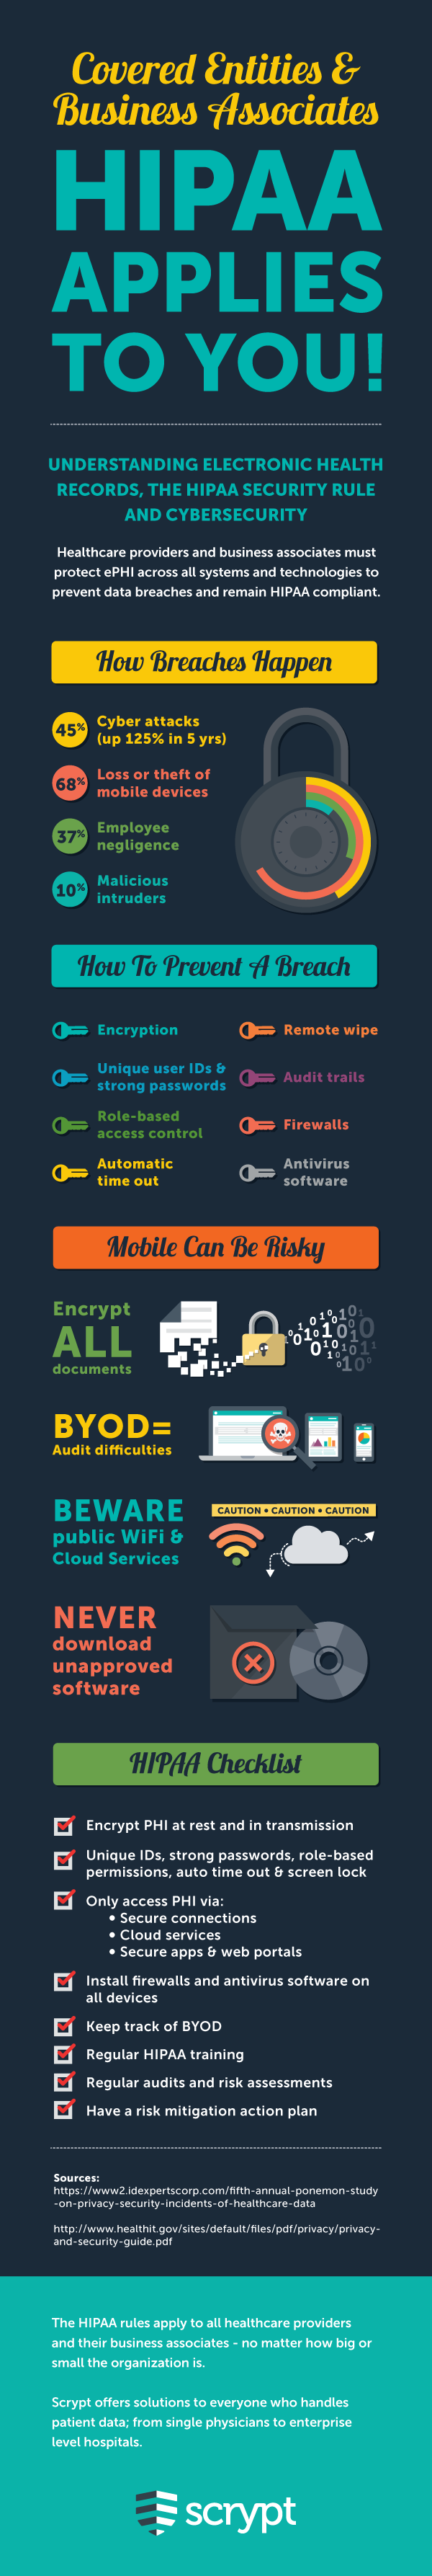 HHS Privacy and Security Rule Infographic